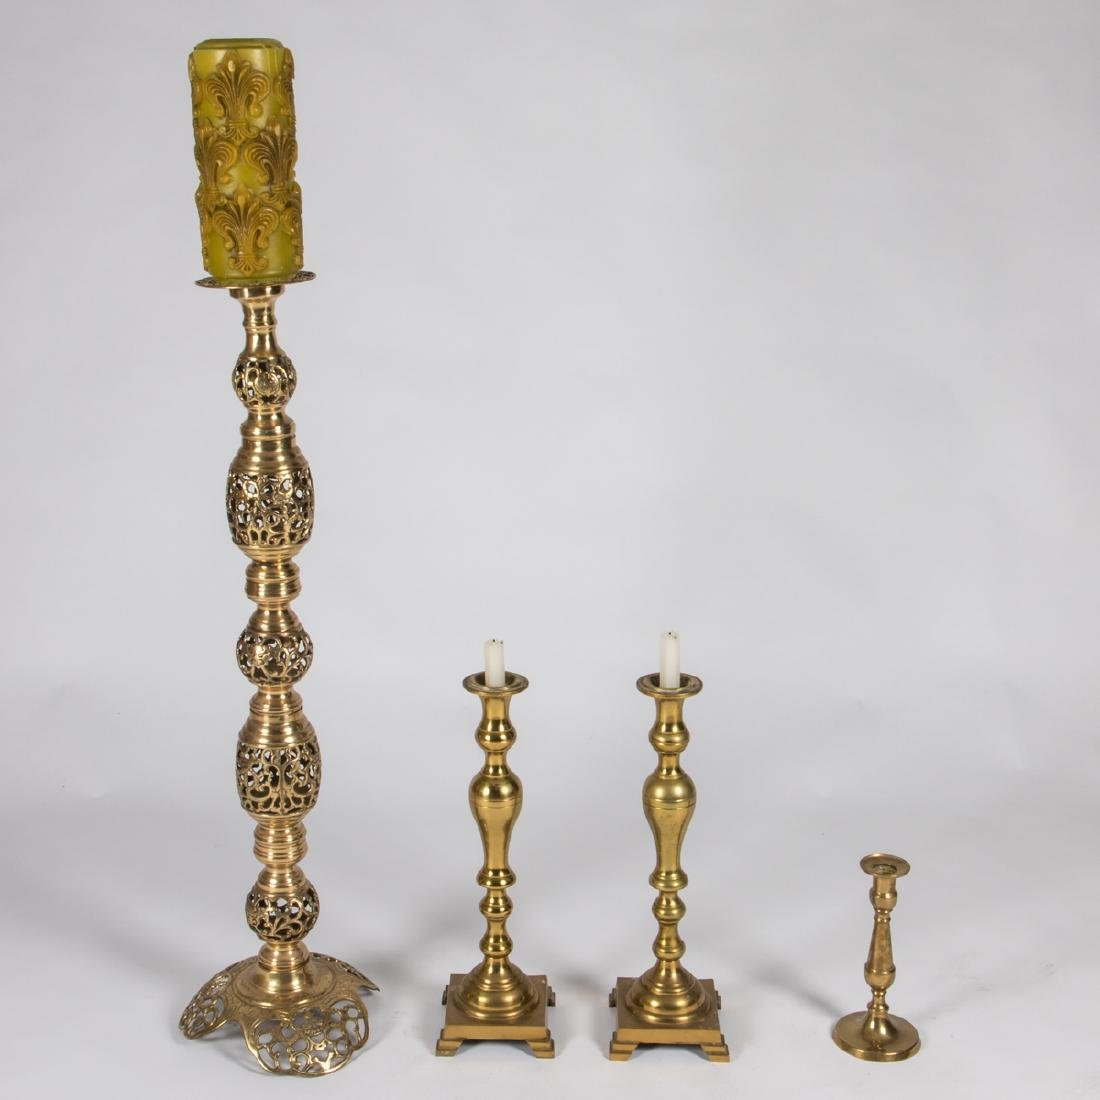 A Group of Four Brass Candlesticks, 20th Century,